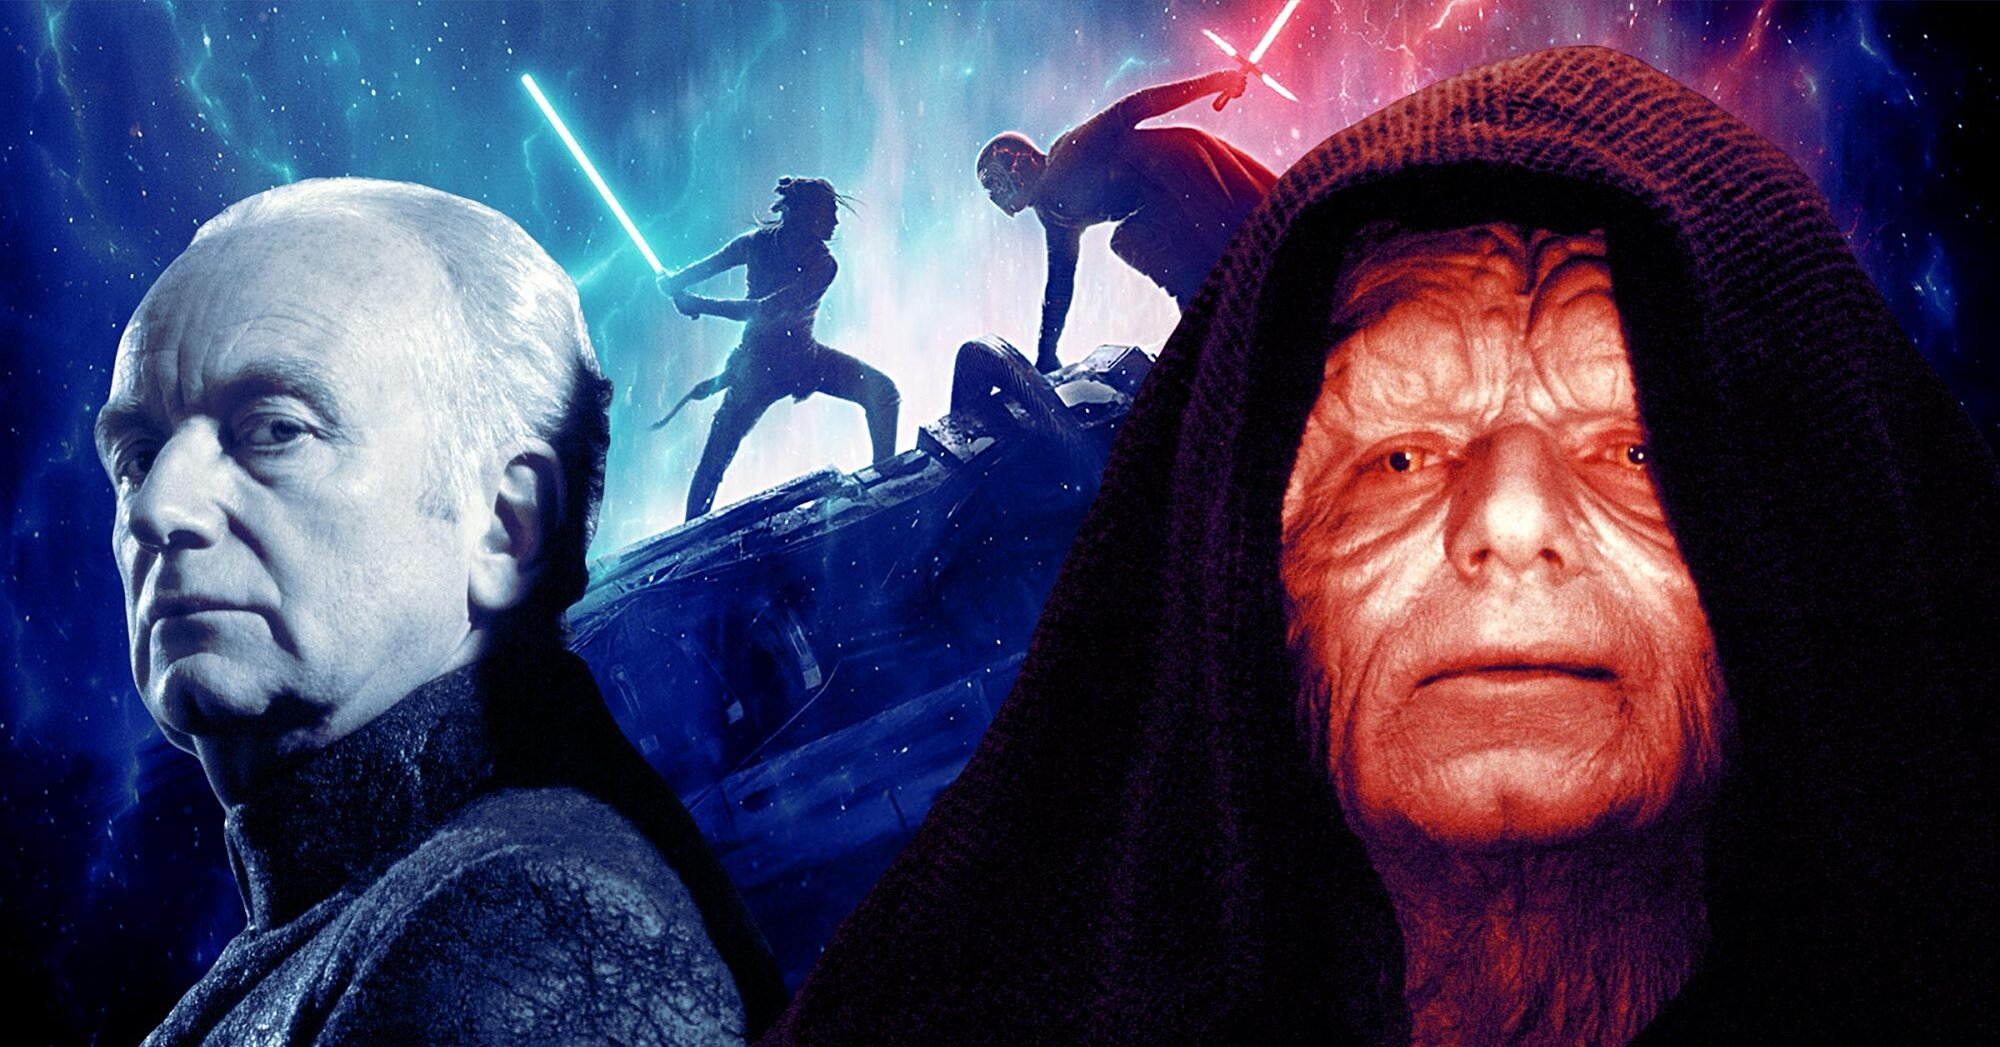 What To Know About Star Wars Emperor Palpatine Ahead Of Rise Of Skywalker Ew Com